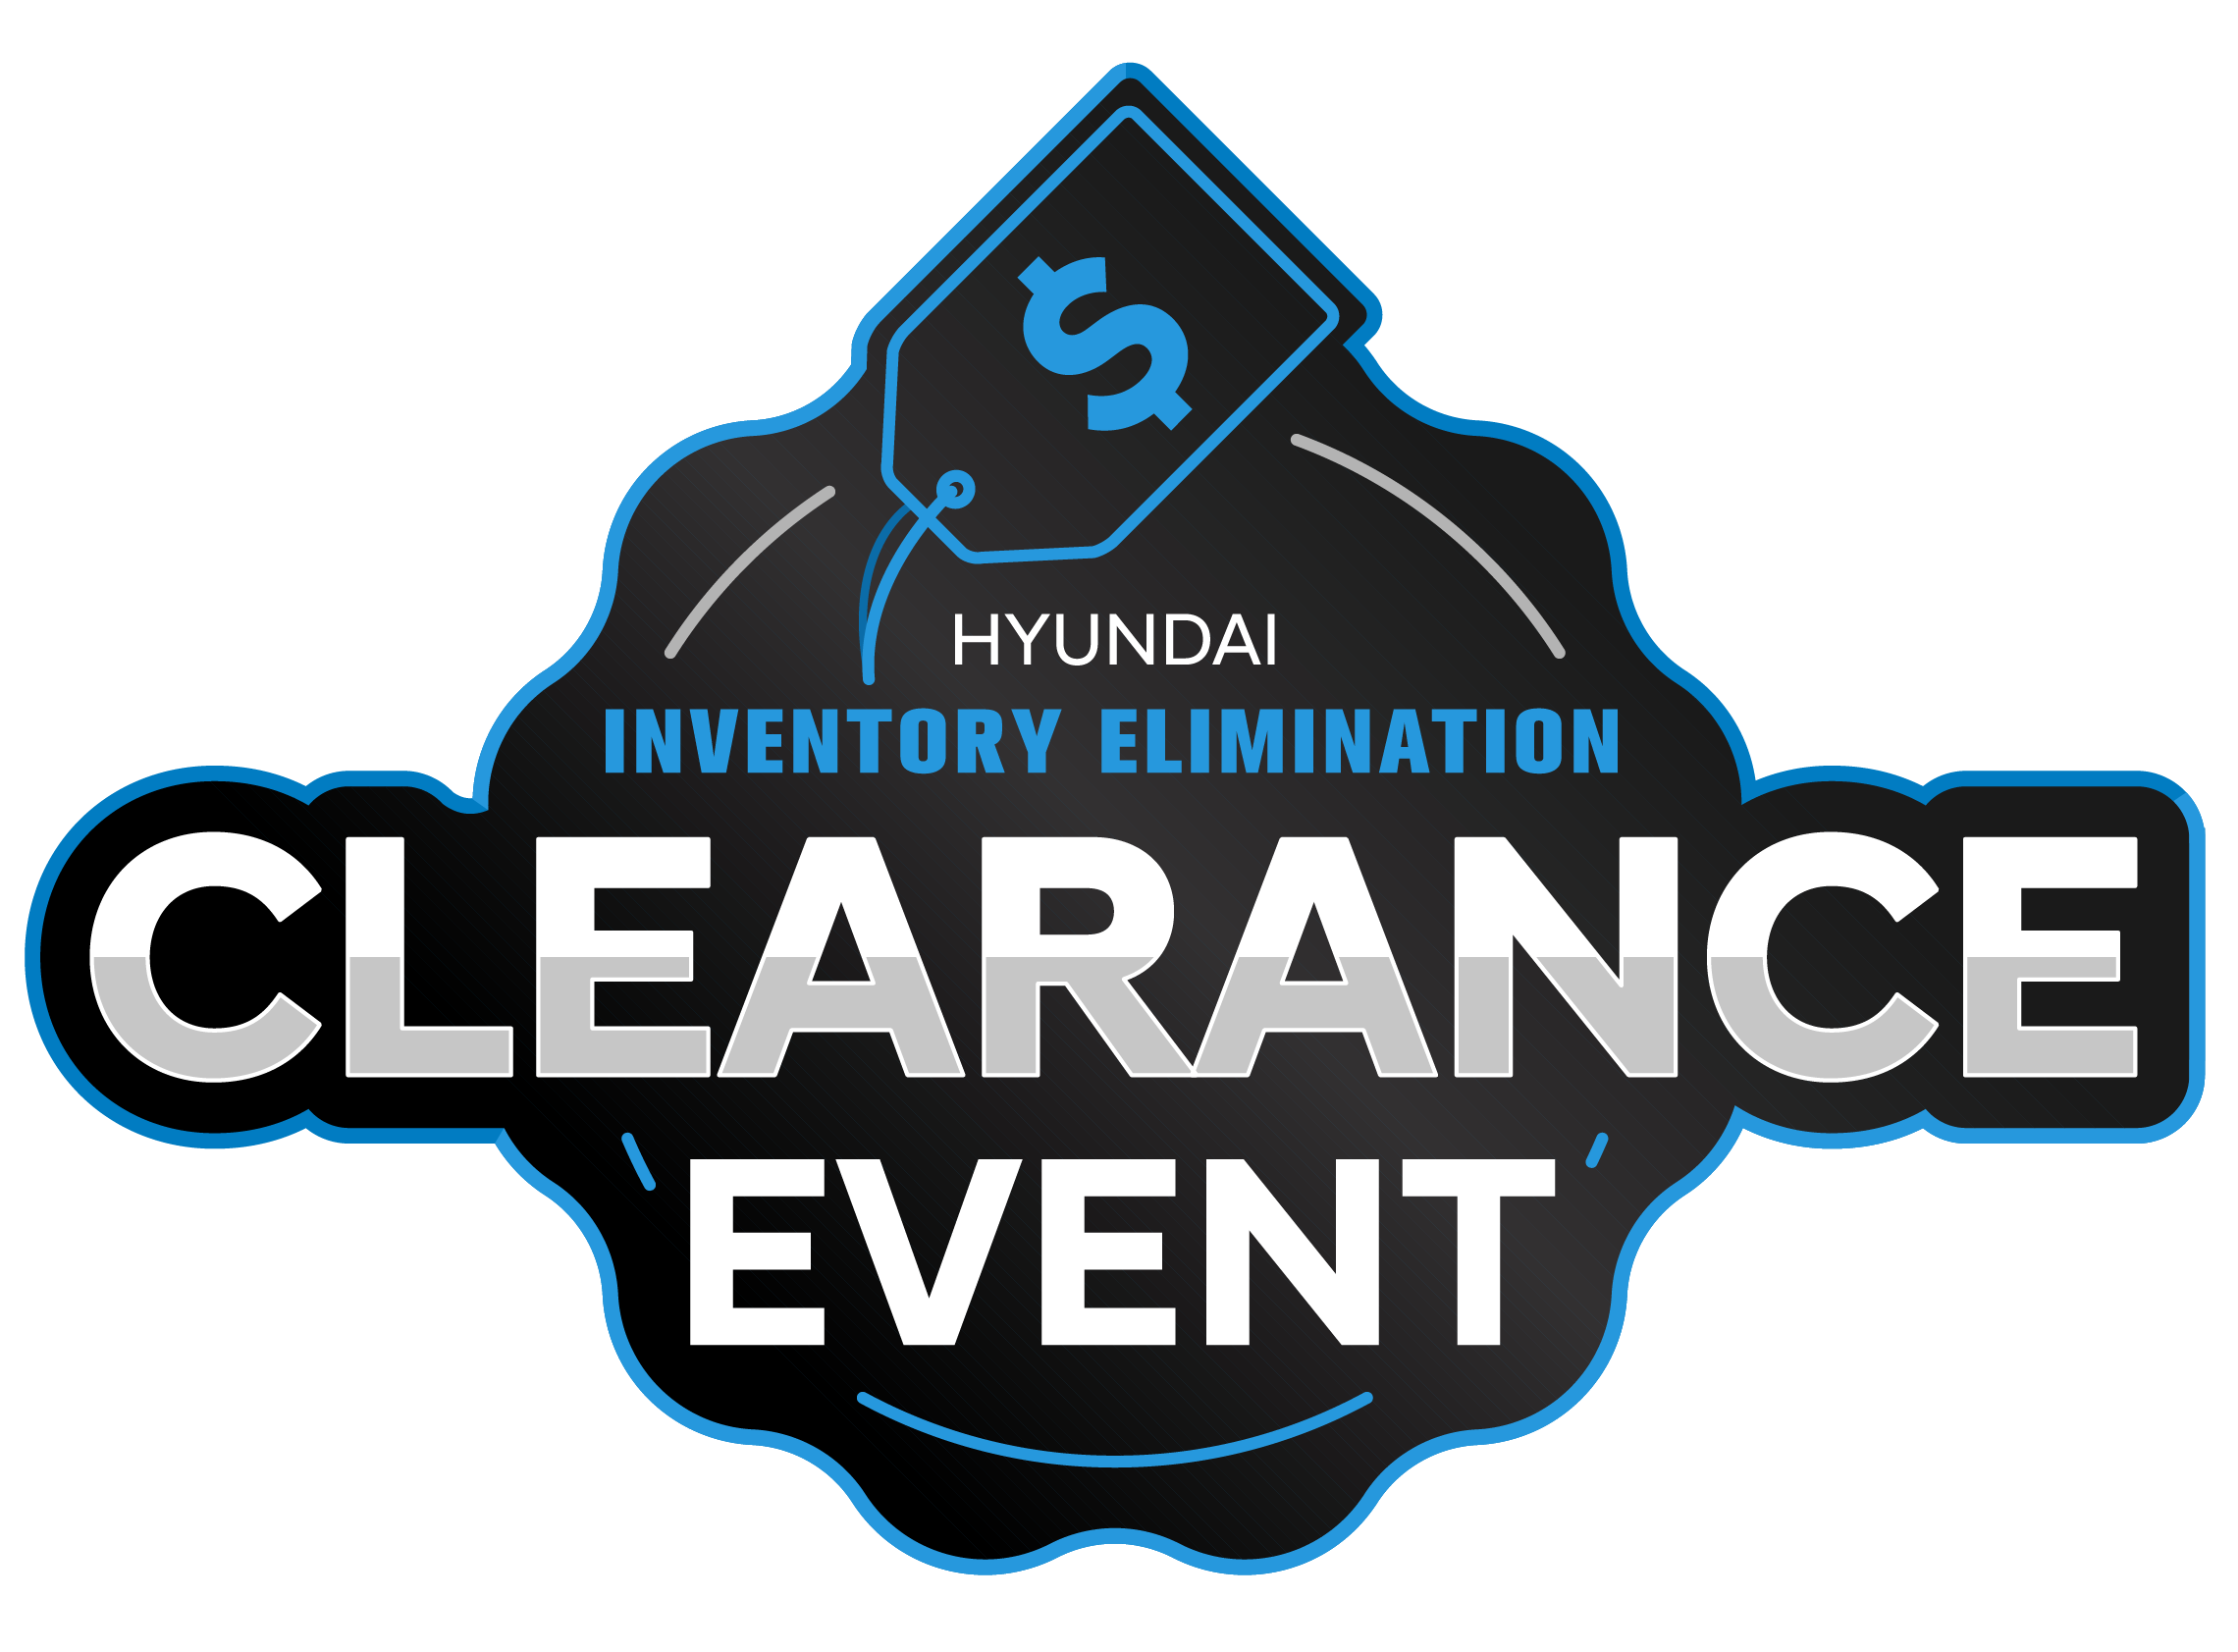 Hyundai Inventory Elimination Clearance Event